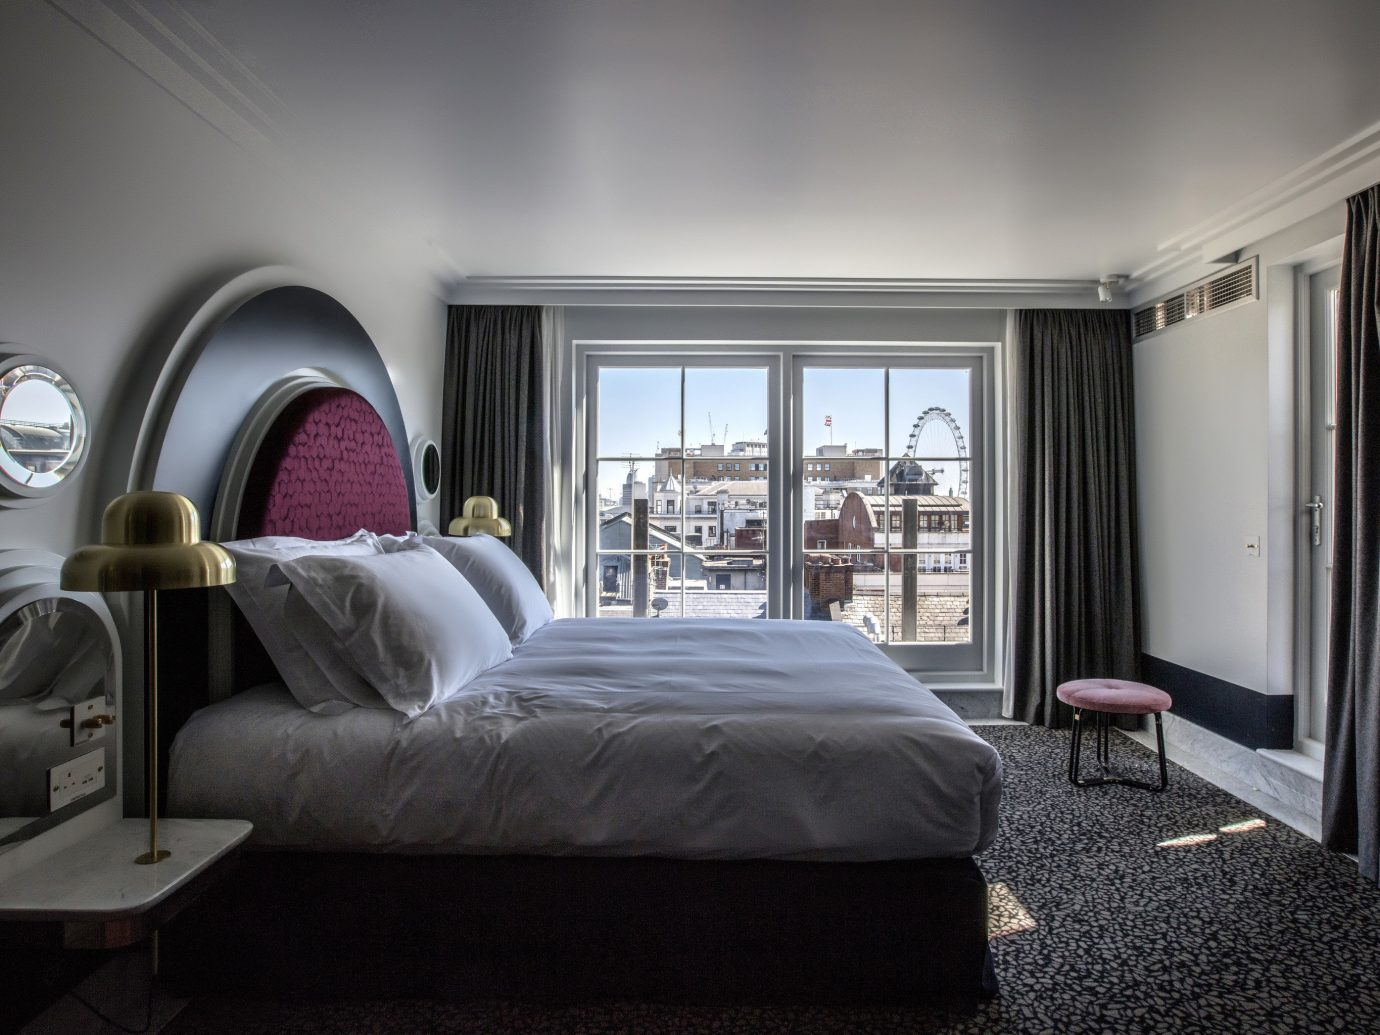 Boutique Hotels London Romantic Hotels indoor wall bed floor room window interior design Bedroom ceiling hotel furniture home Suite bed frame mattress